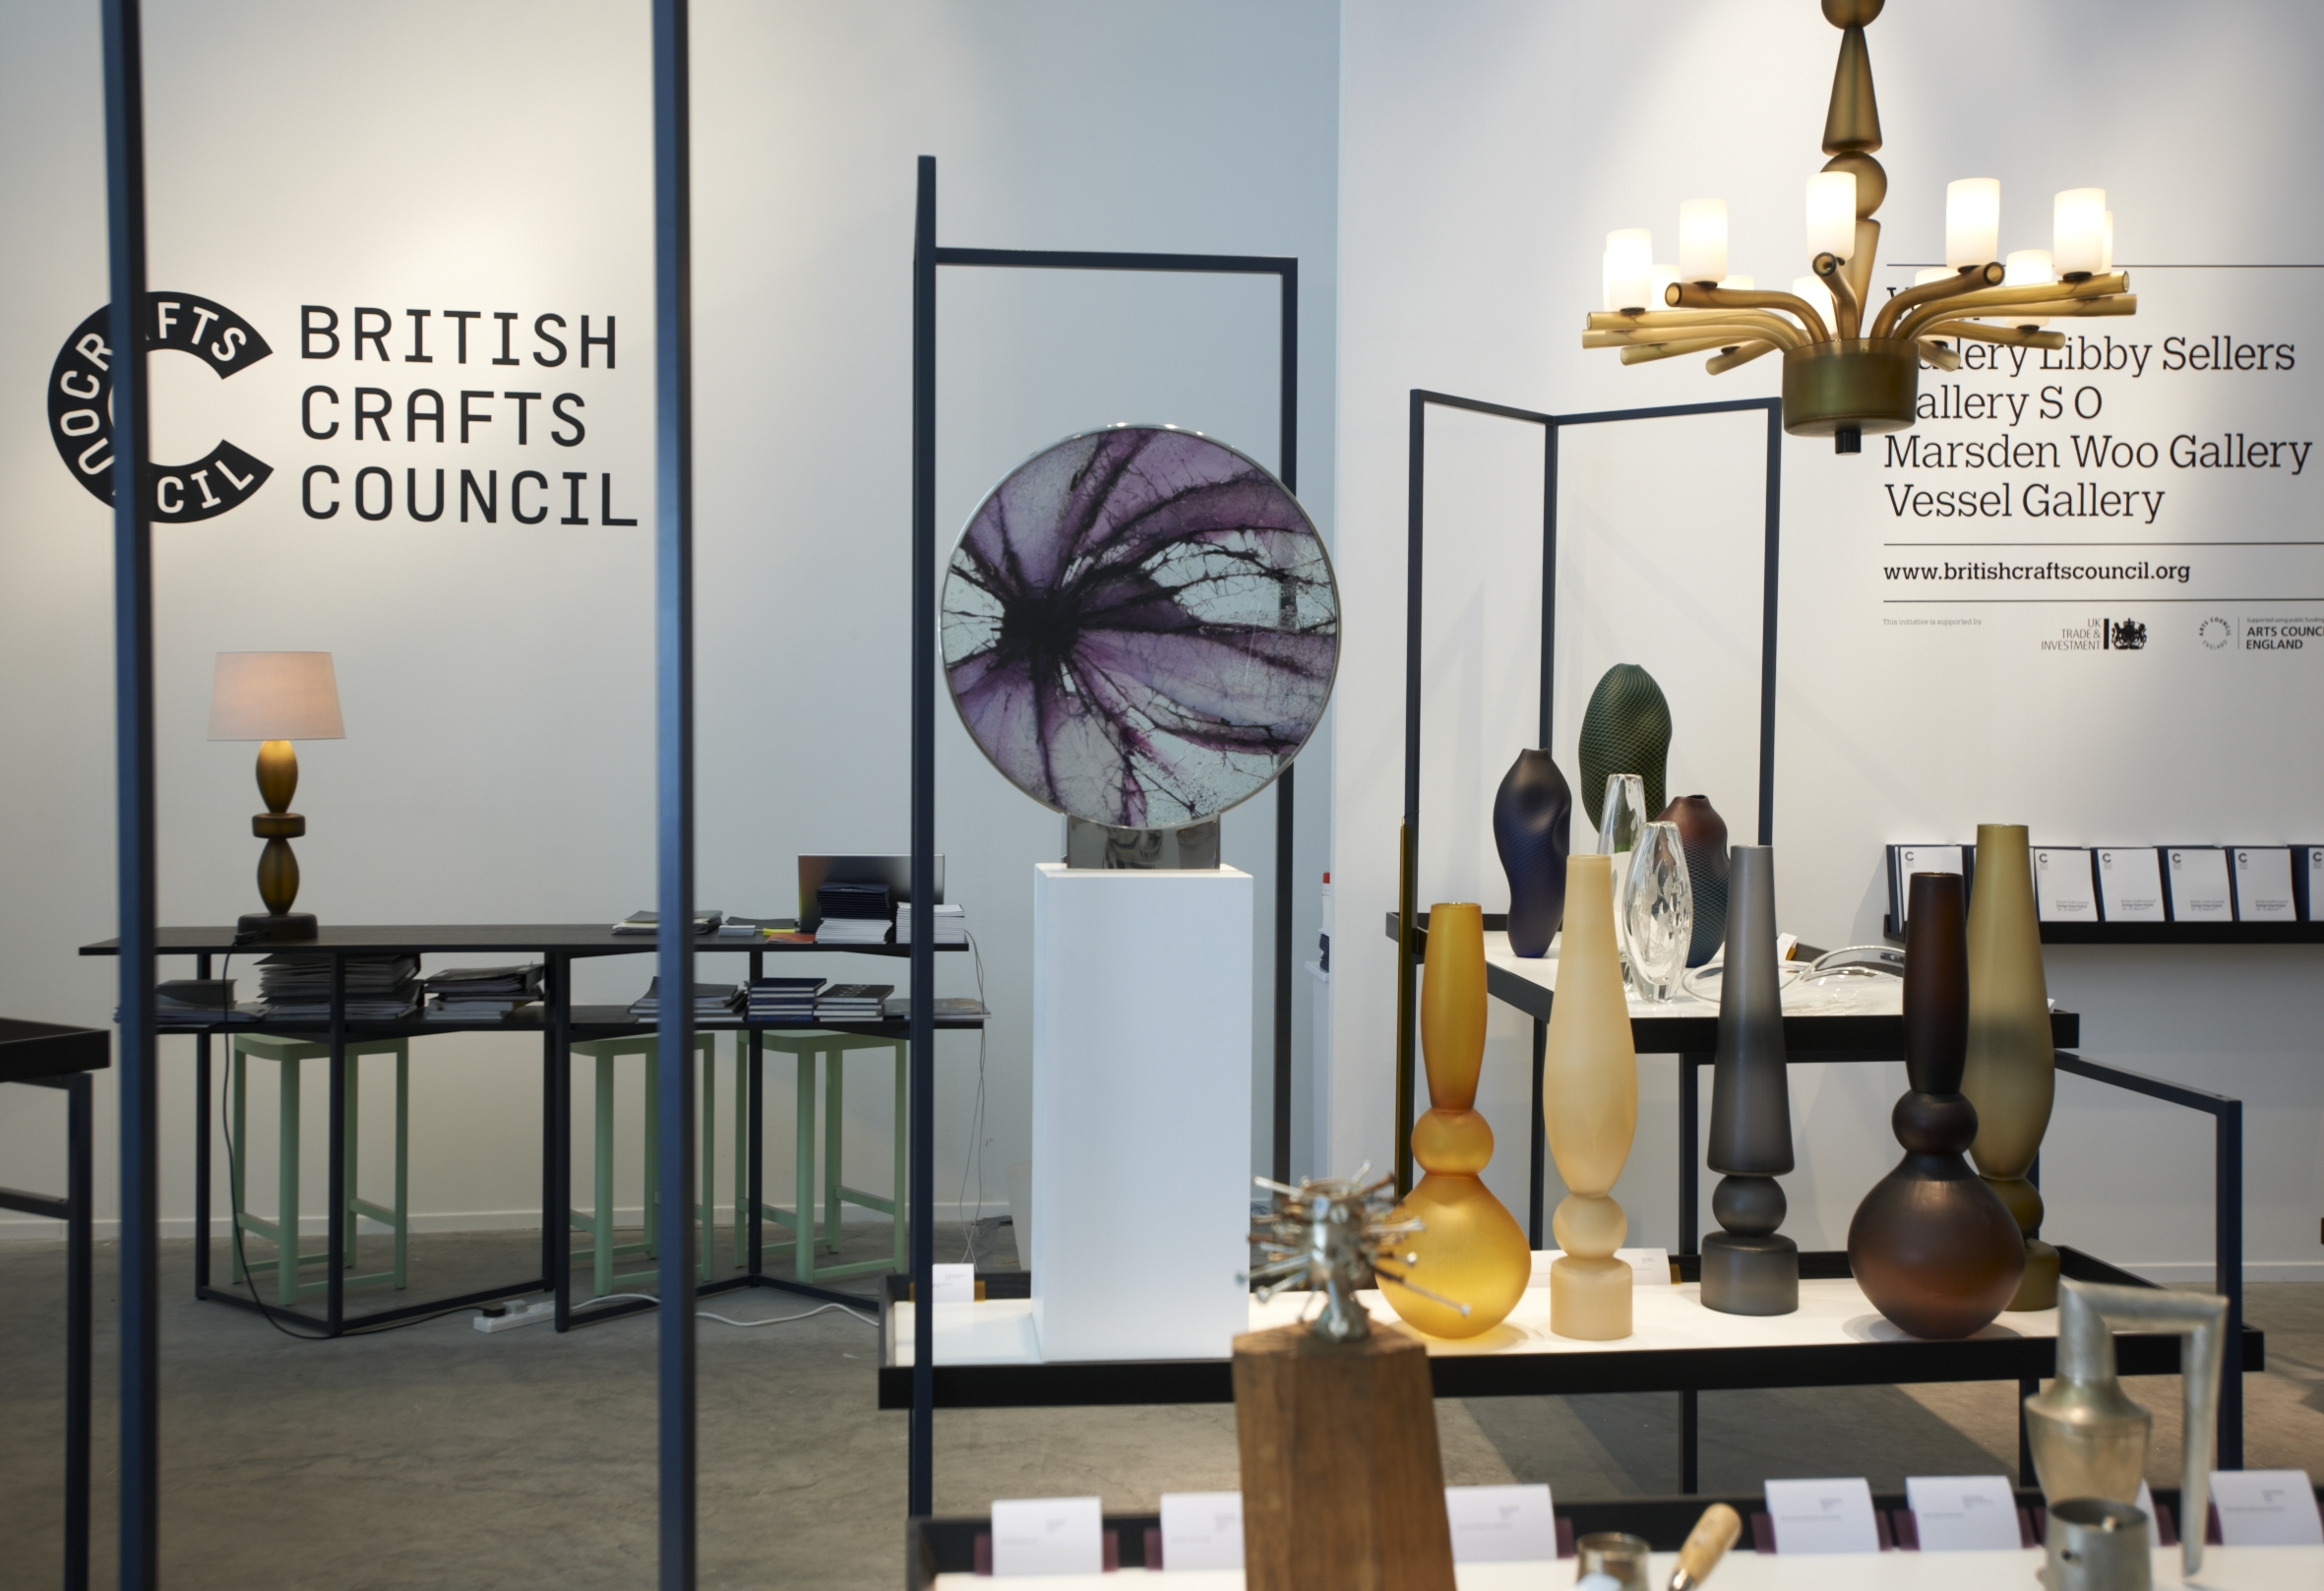 Items on display by British Crafts Council at Design Days Dubai 2013.